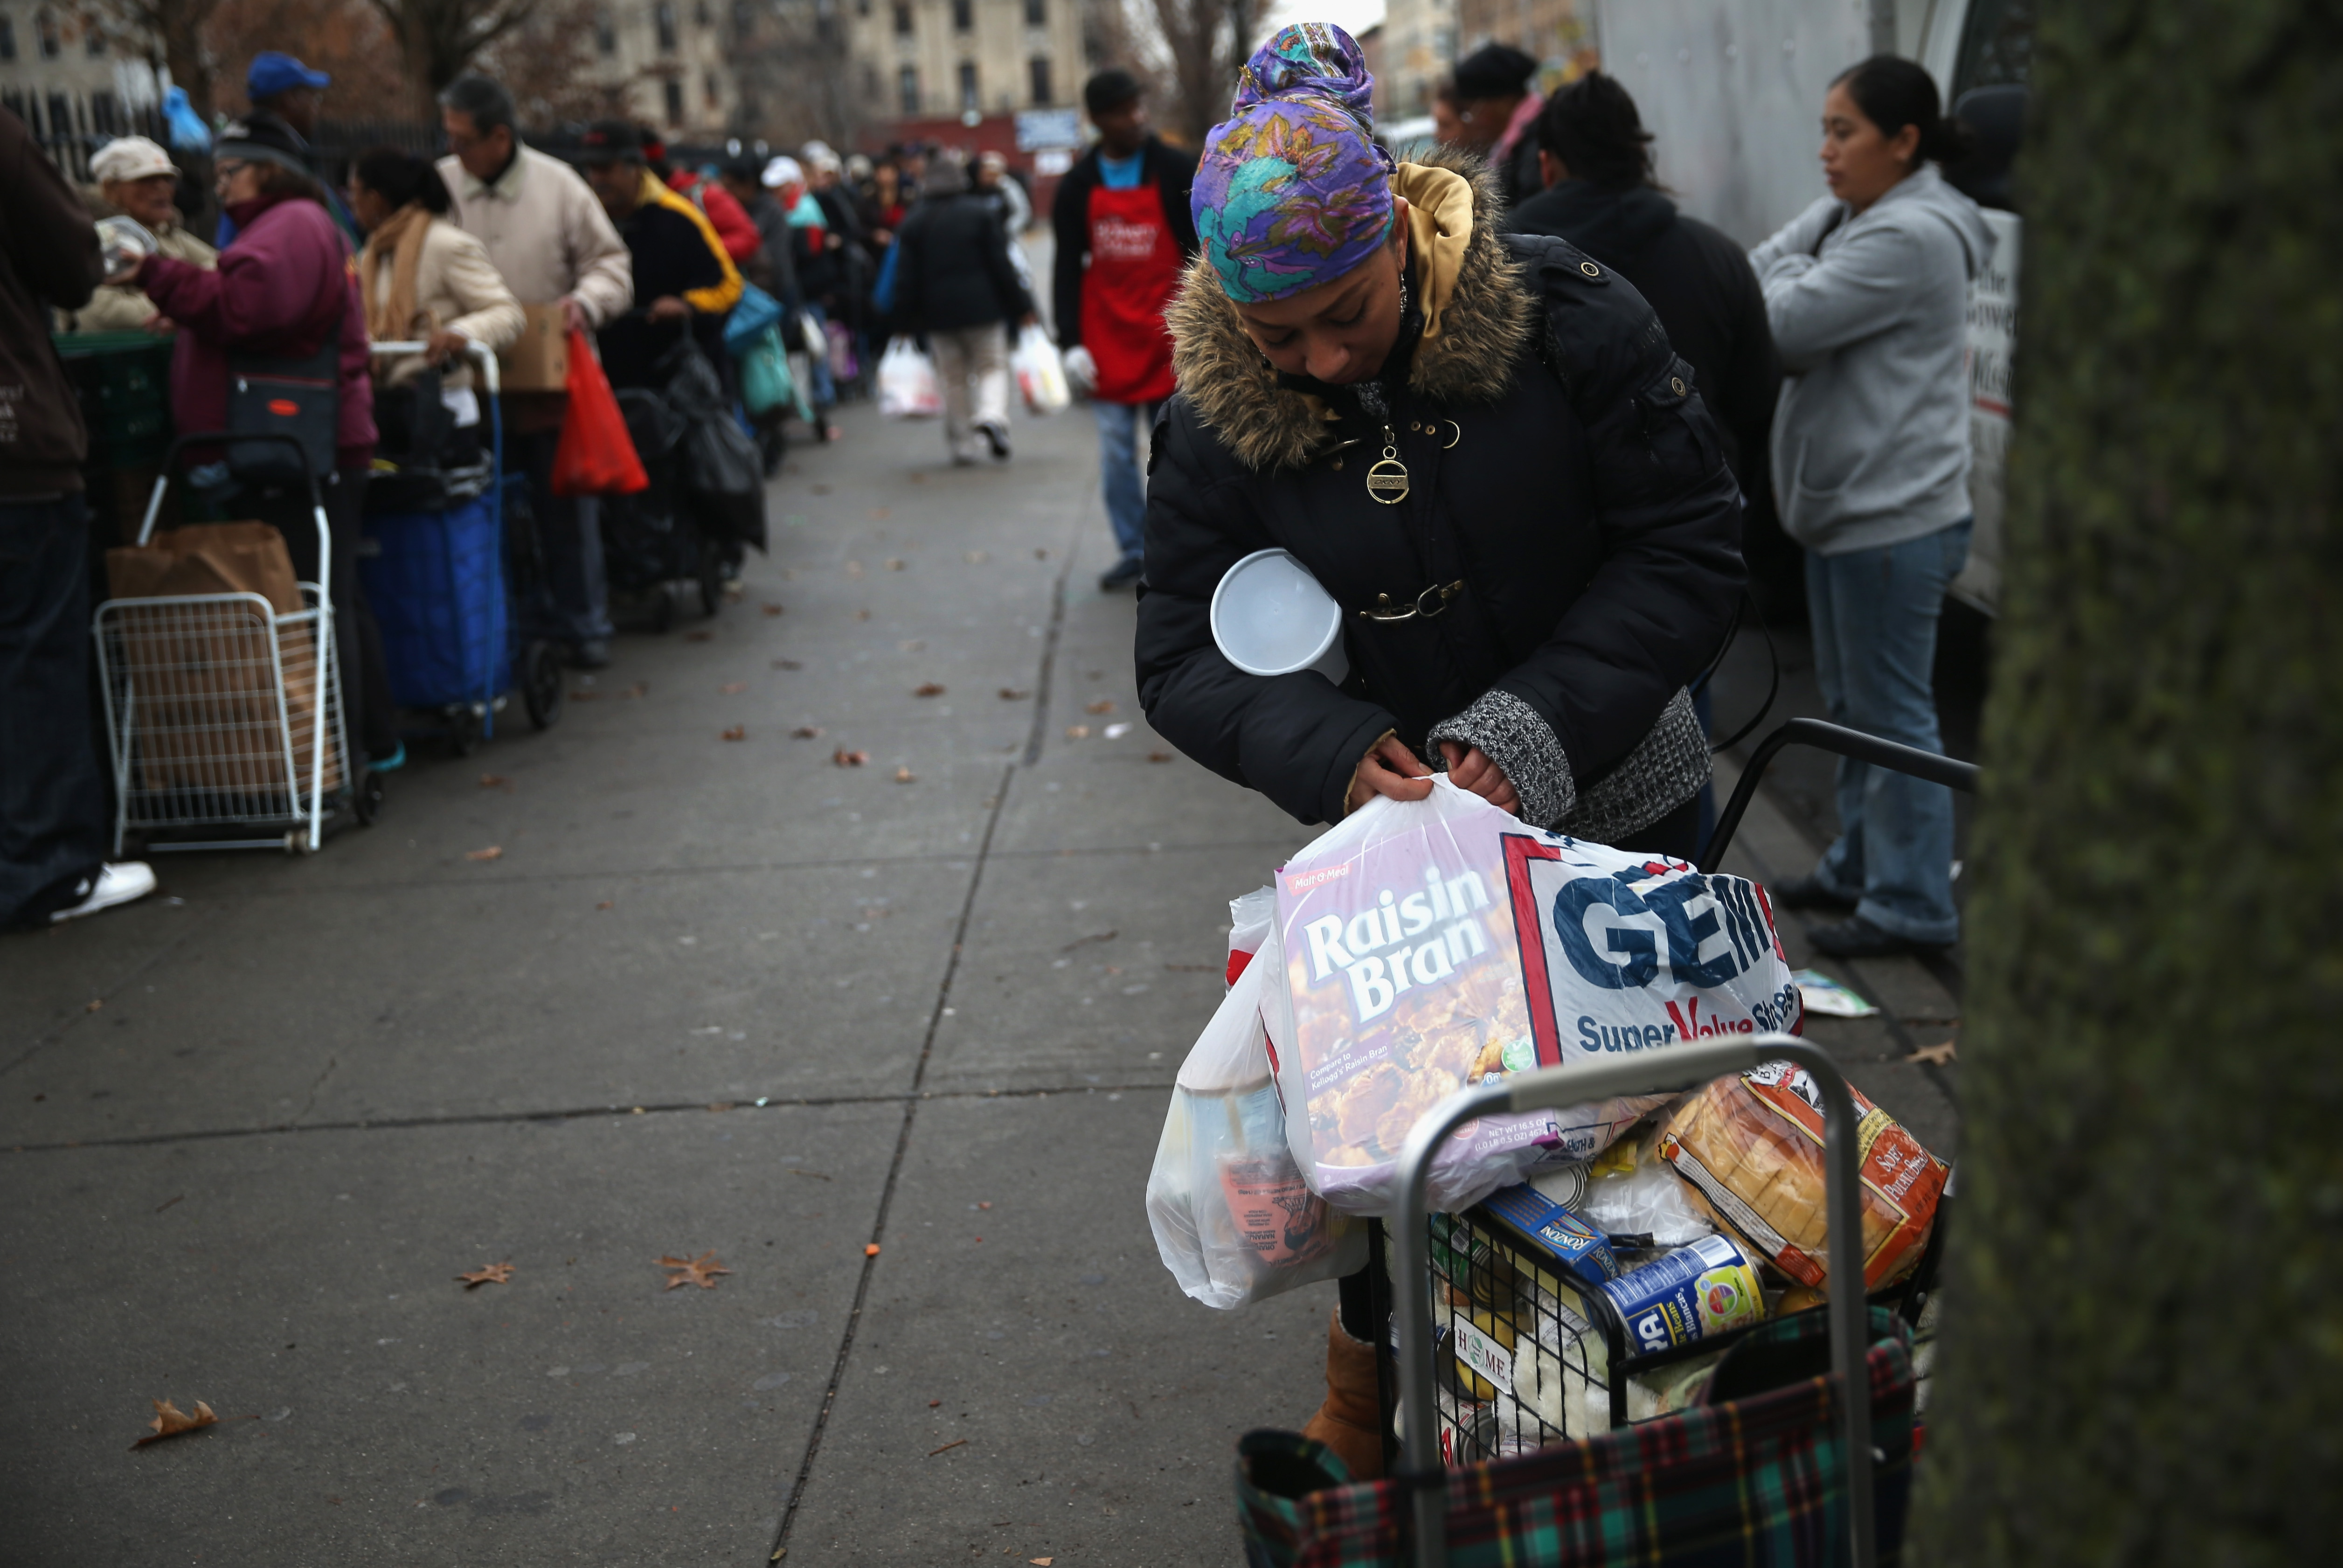 Christian Bowery Mission Delivers Outreach Food Pantry To Brooklyn Families